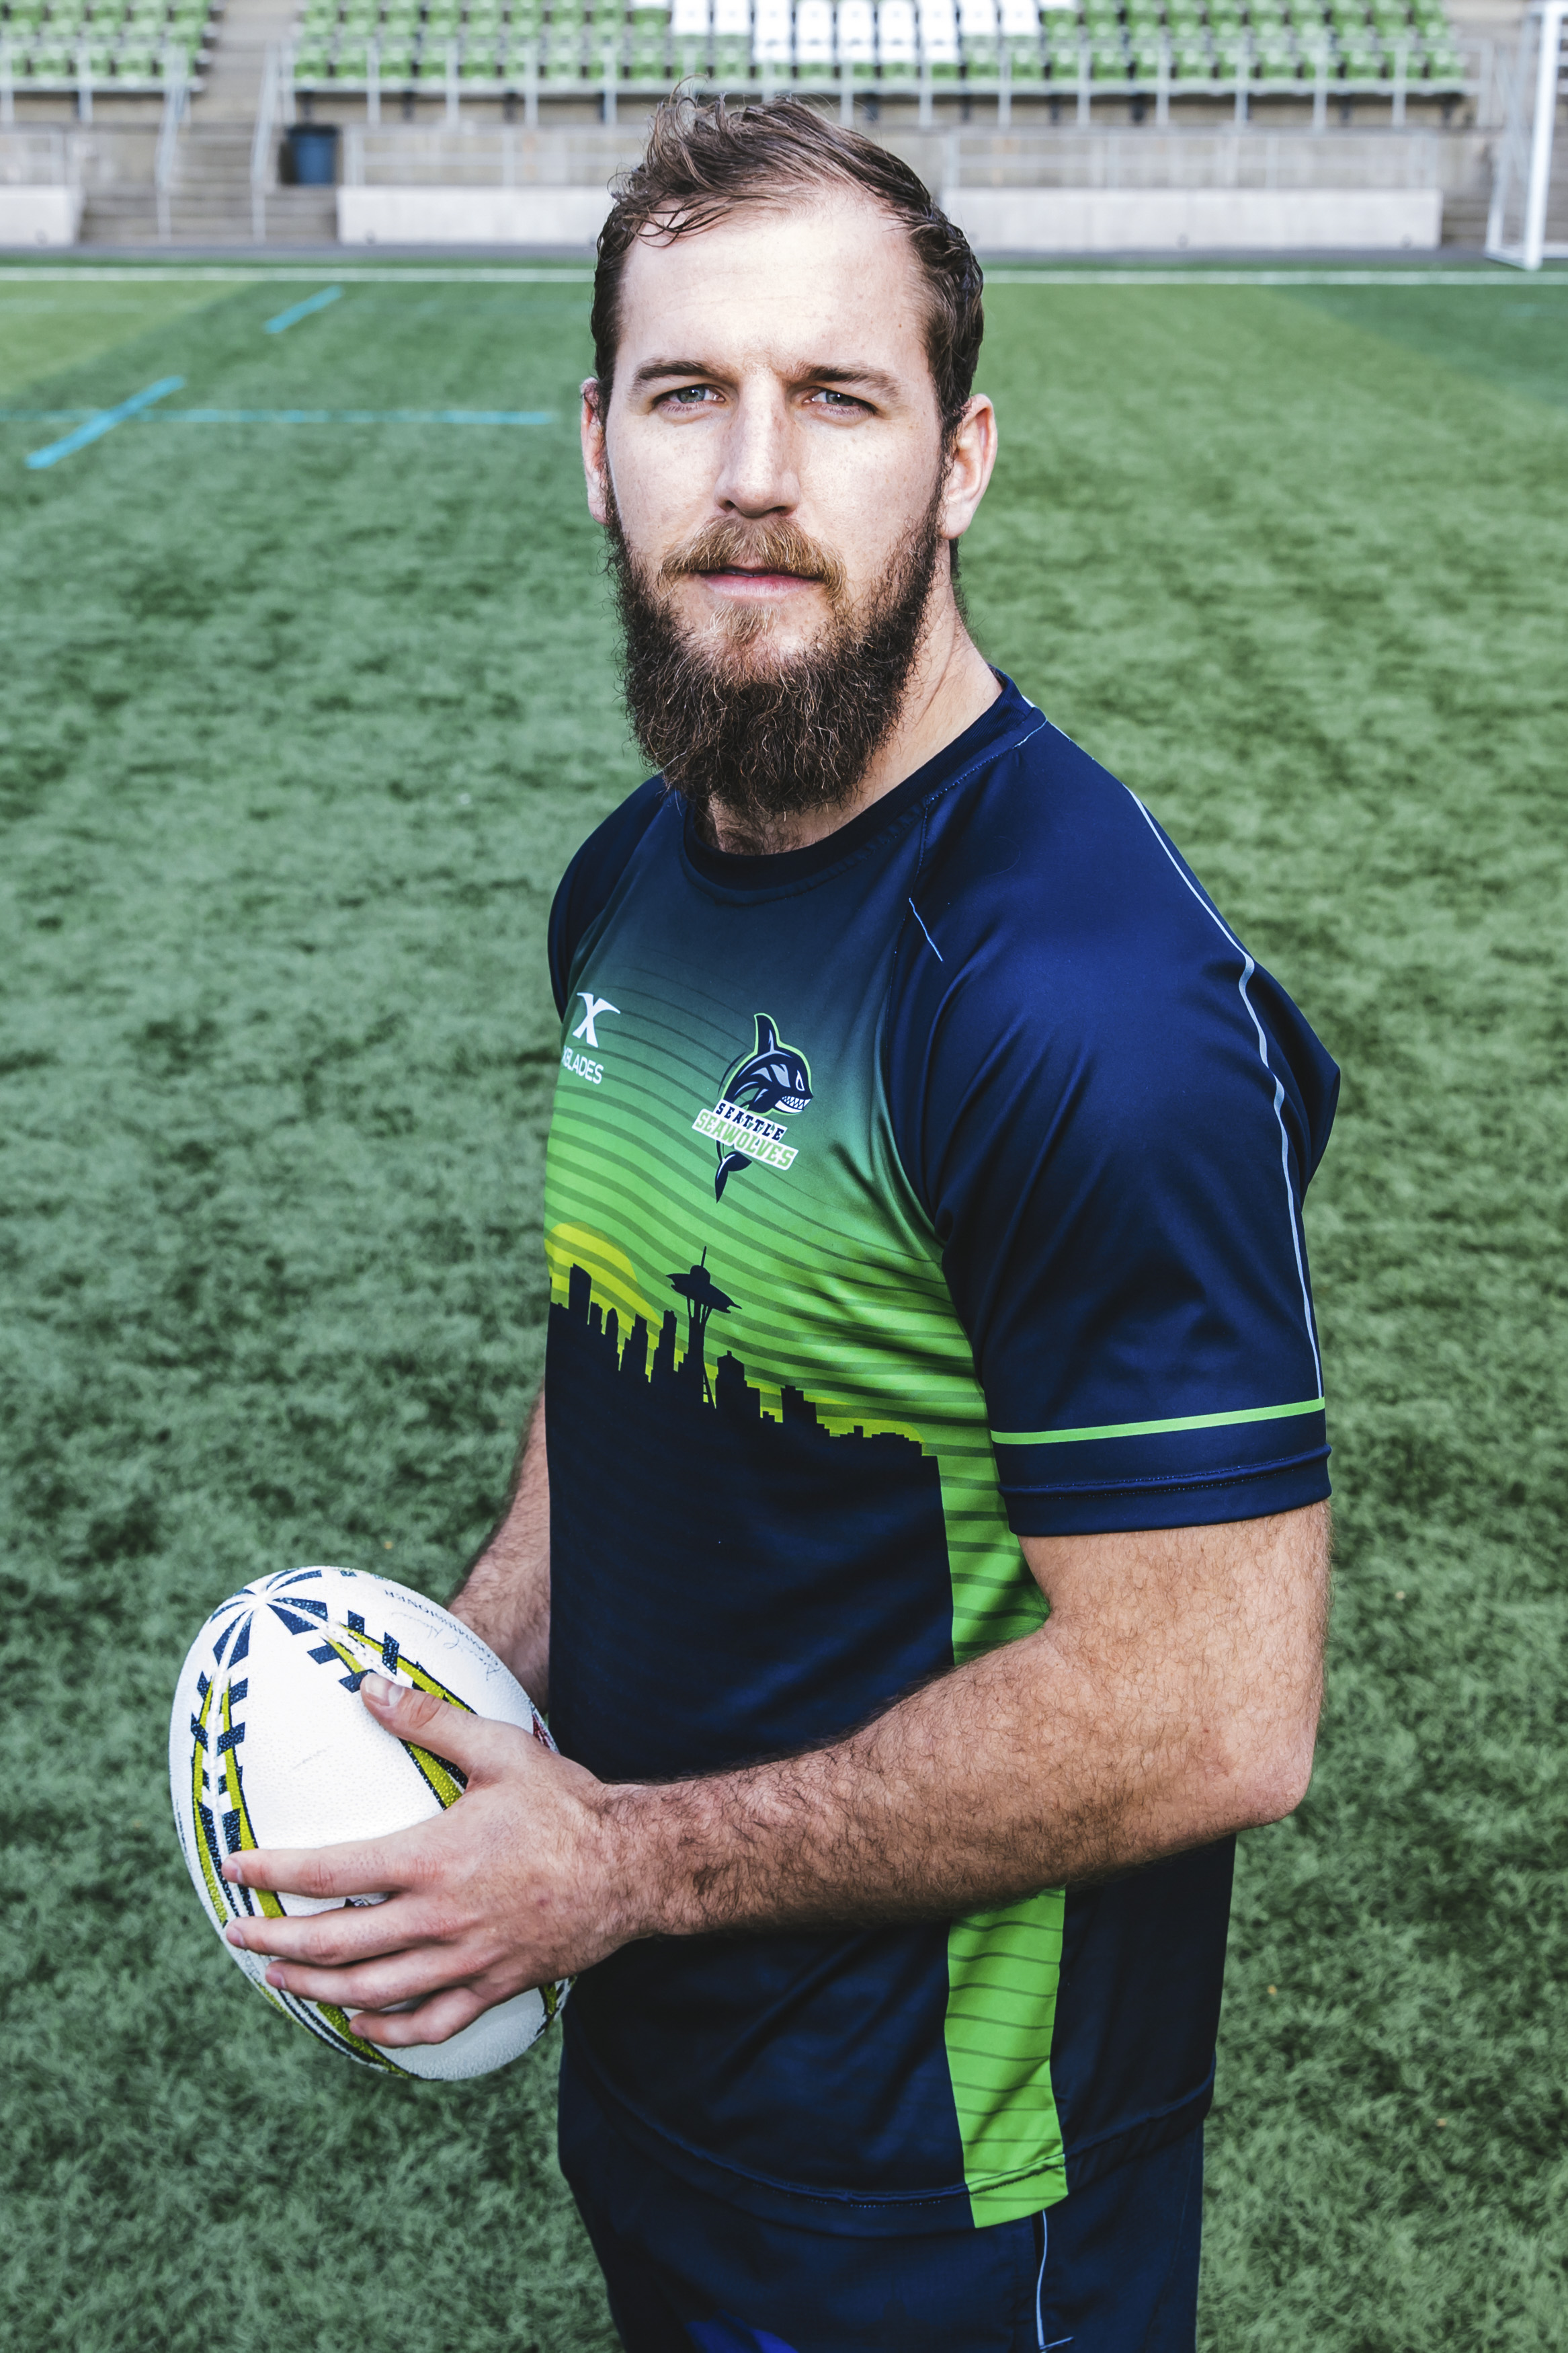 Hailing from Pretoria, South Africa, Riekert Hattingh, 24,{ } plays 8 Man on the Seattle Seawolves. His favorite movie is Yellowstone. (Image: Sunita Martini / Seattle Refined).